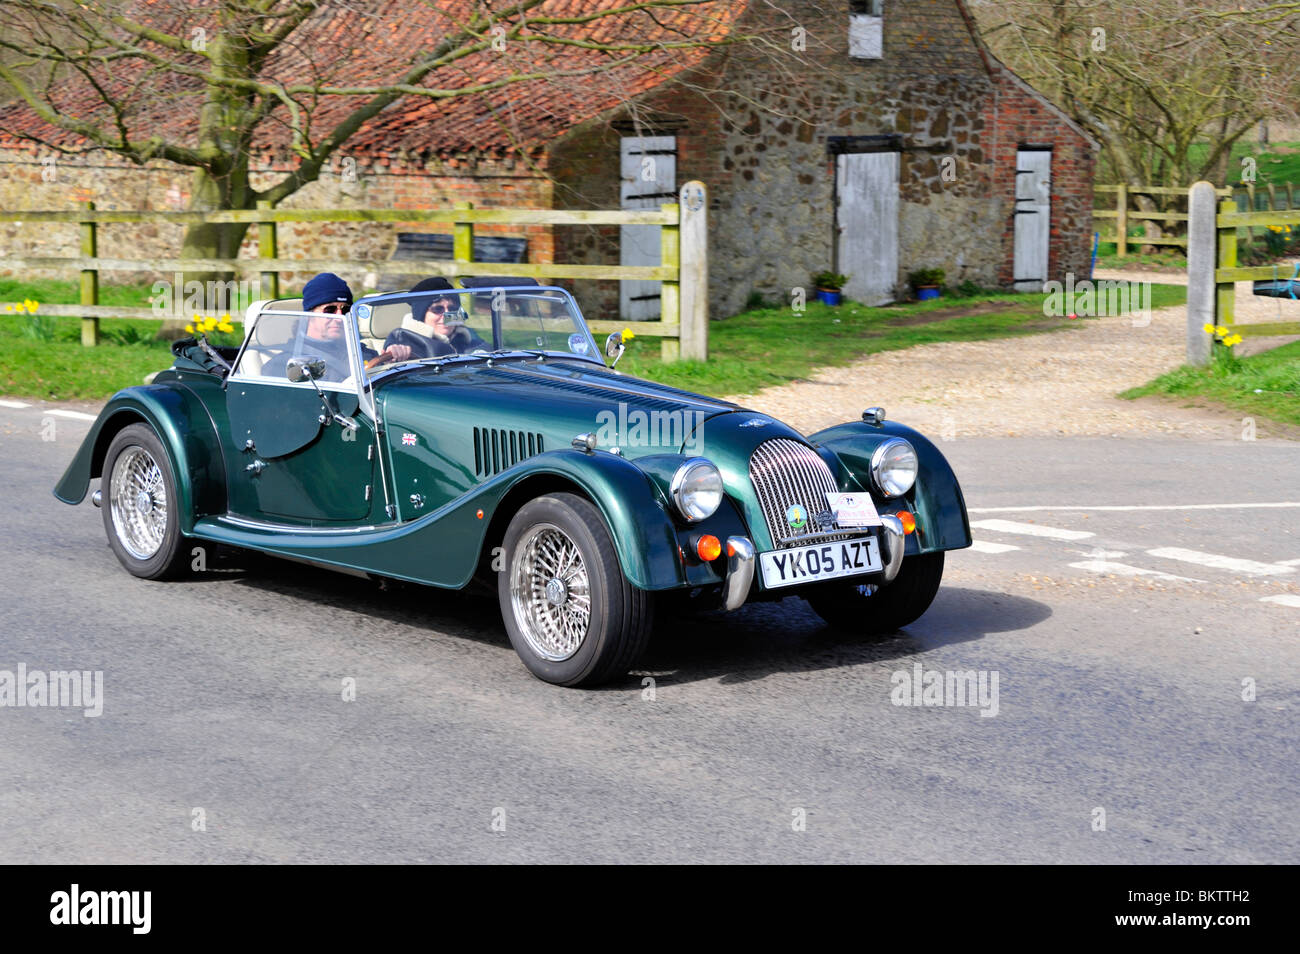 ON THE OPEN ROAD. MORGAN ROADSTER - Stock Image